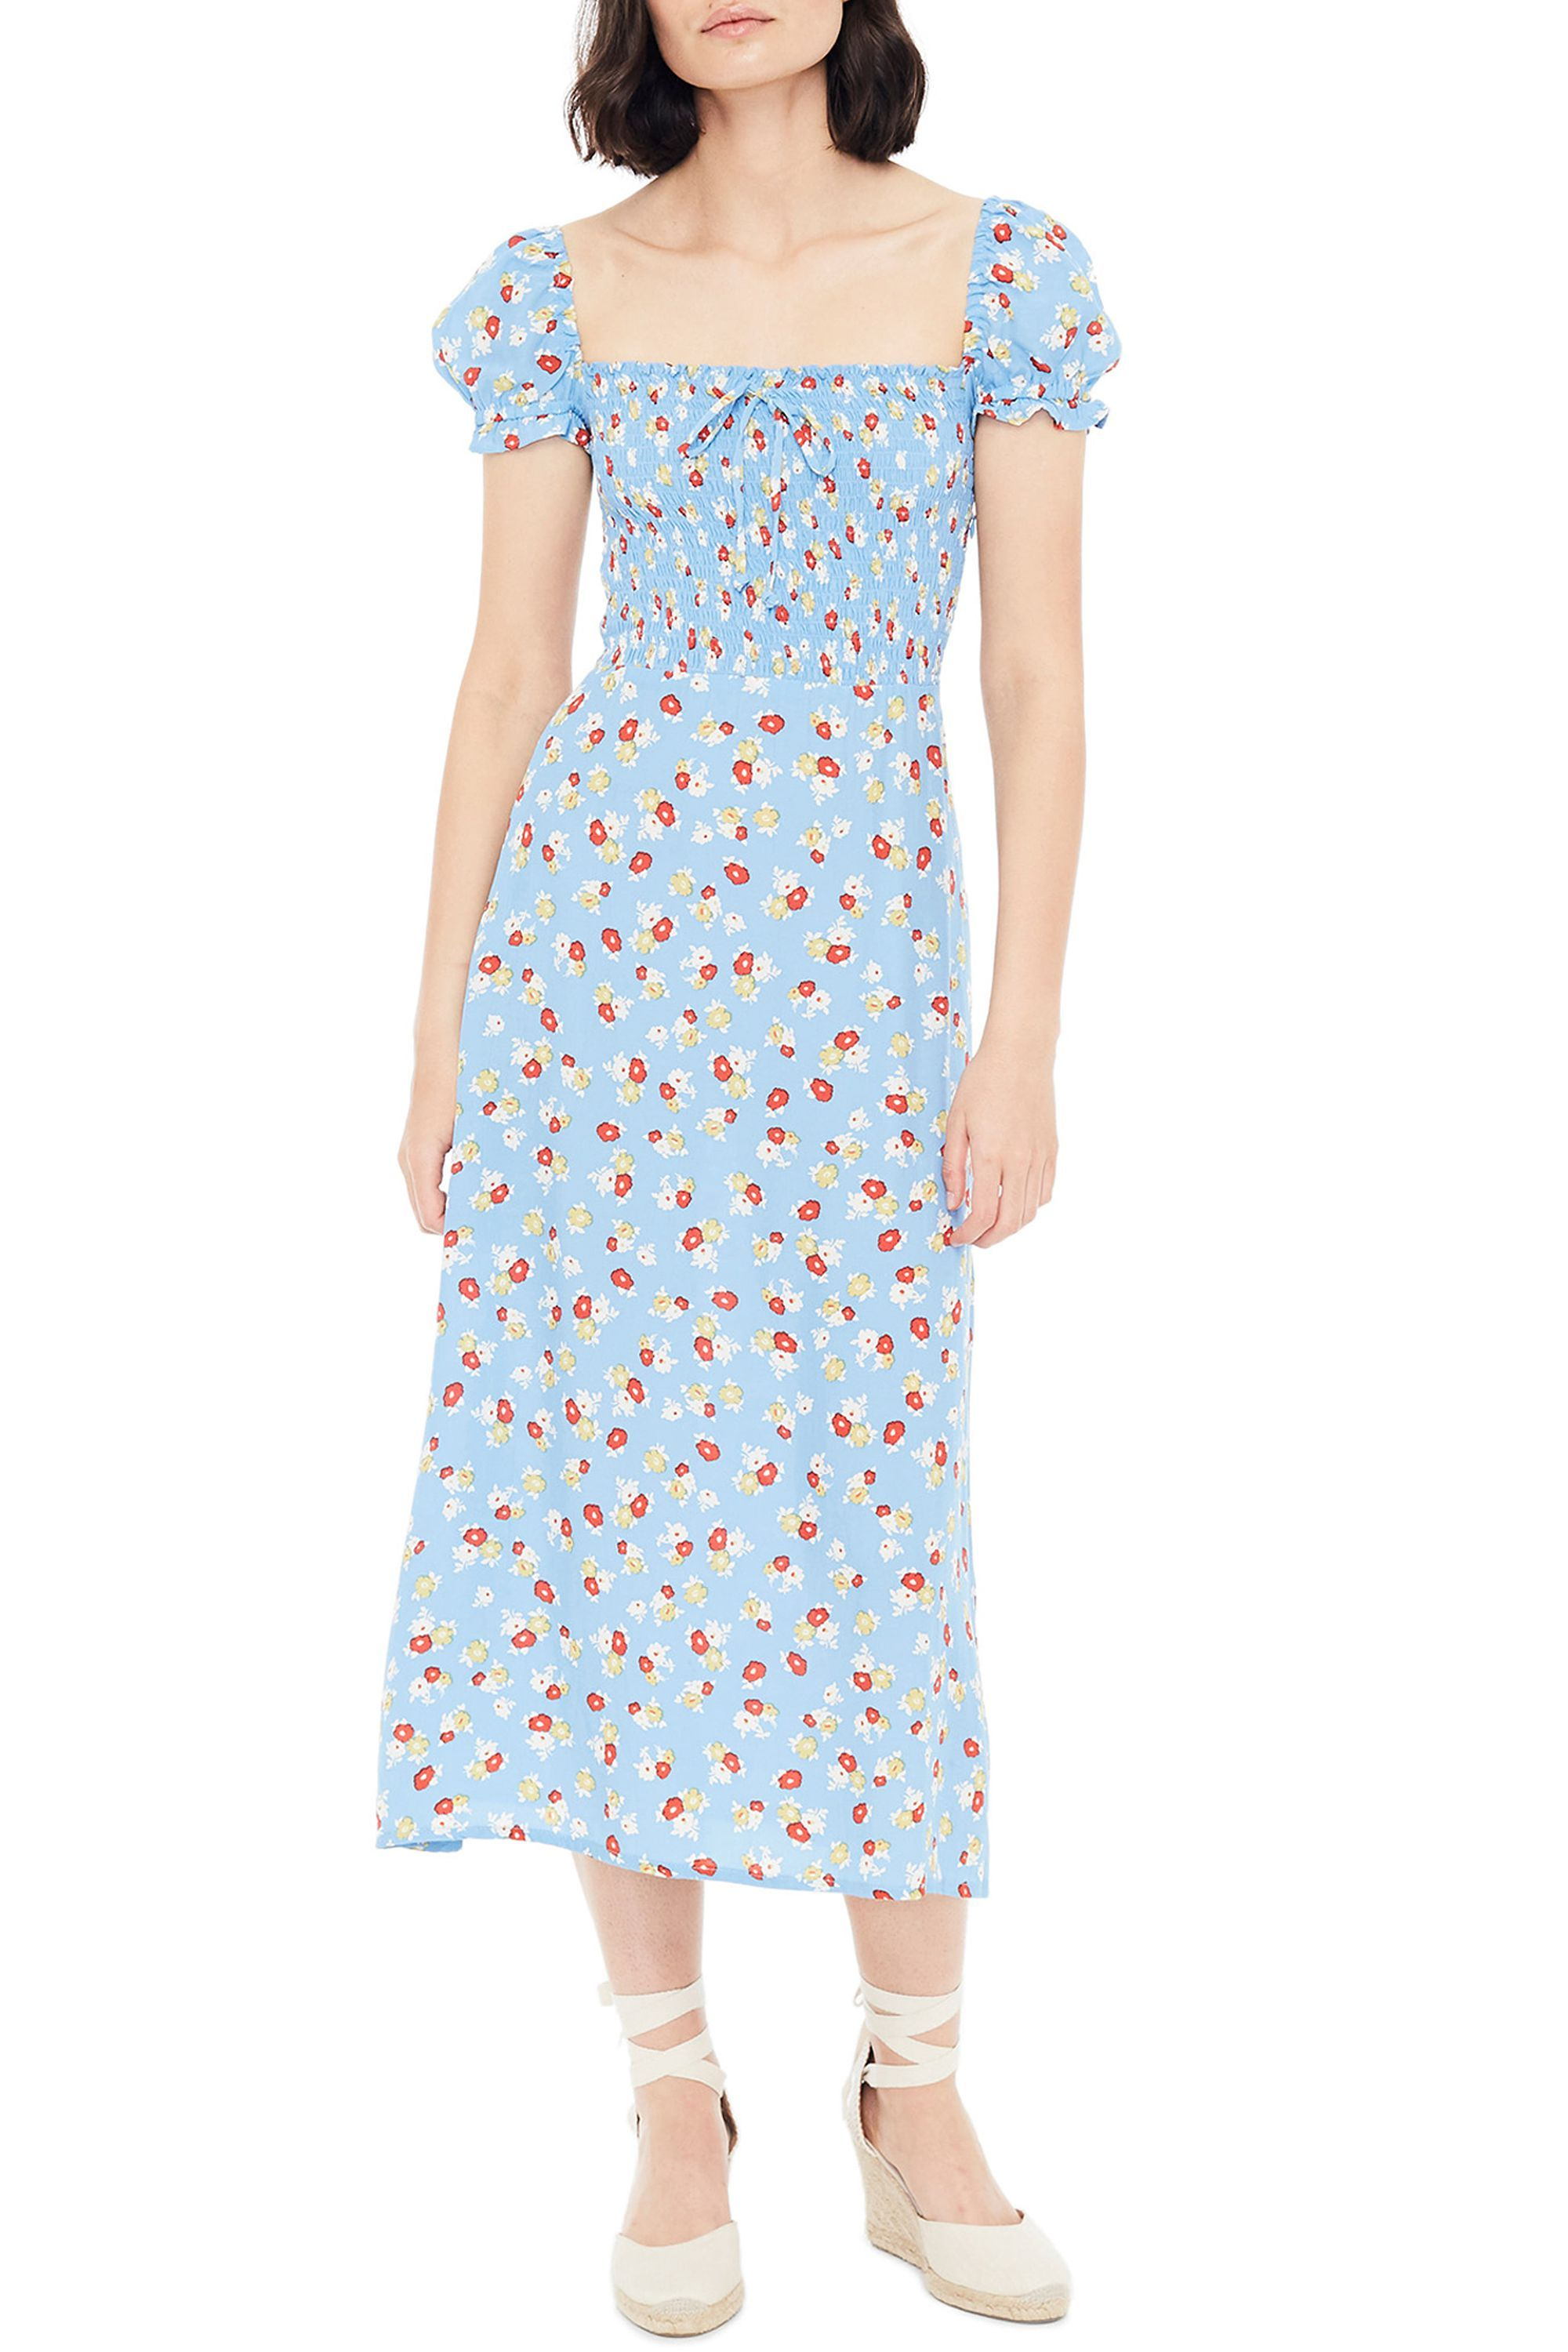 Castilo Jasmin Midi Dress Faithfull the Brand nordstrom.com $189.00 SHOP NOW We could own every floral dress in existence, and still need a new one. The smocked bodice on this style is a sweet detail, and works well with feminine accessories like lace-up espadrilles.